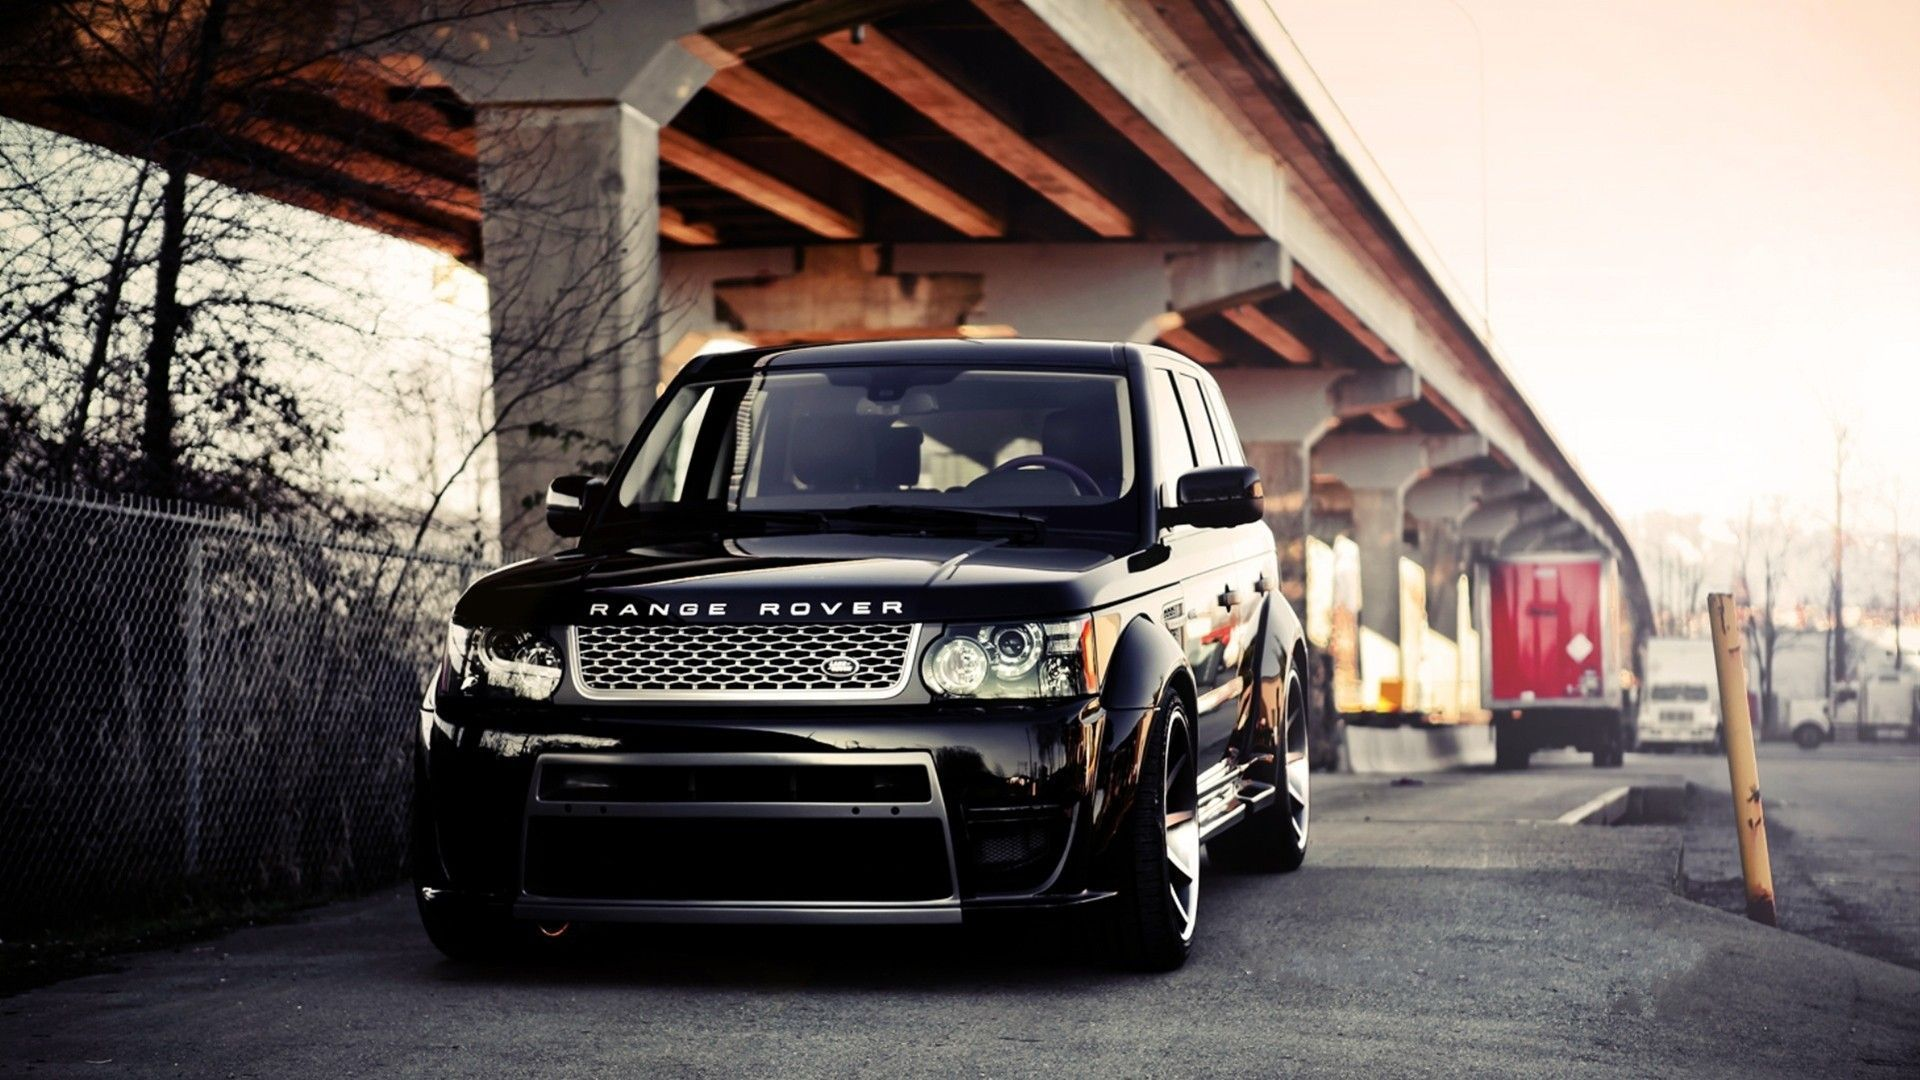 Range rover sport wallpapers wallpaper